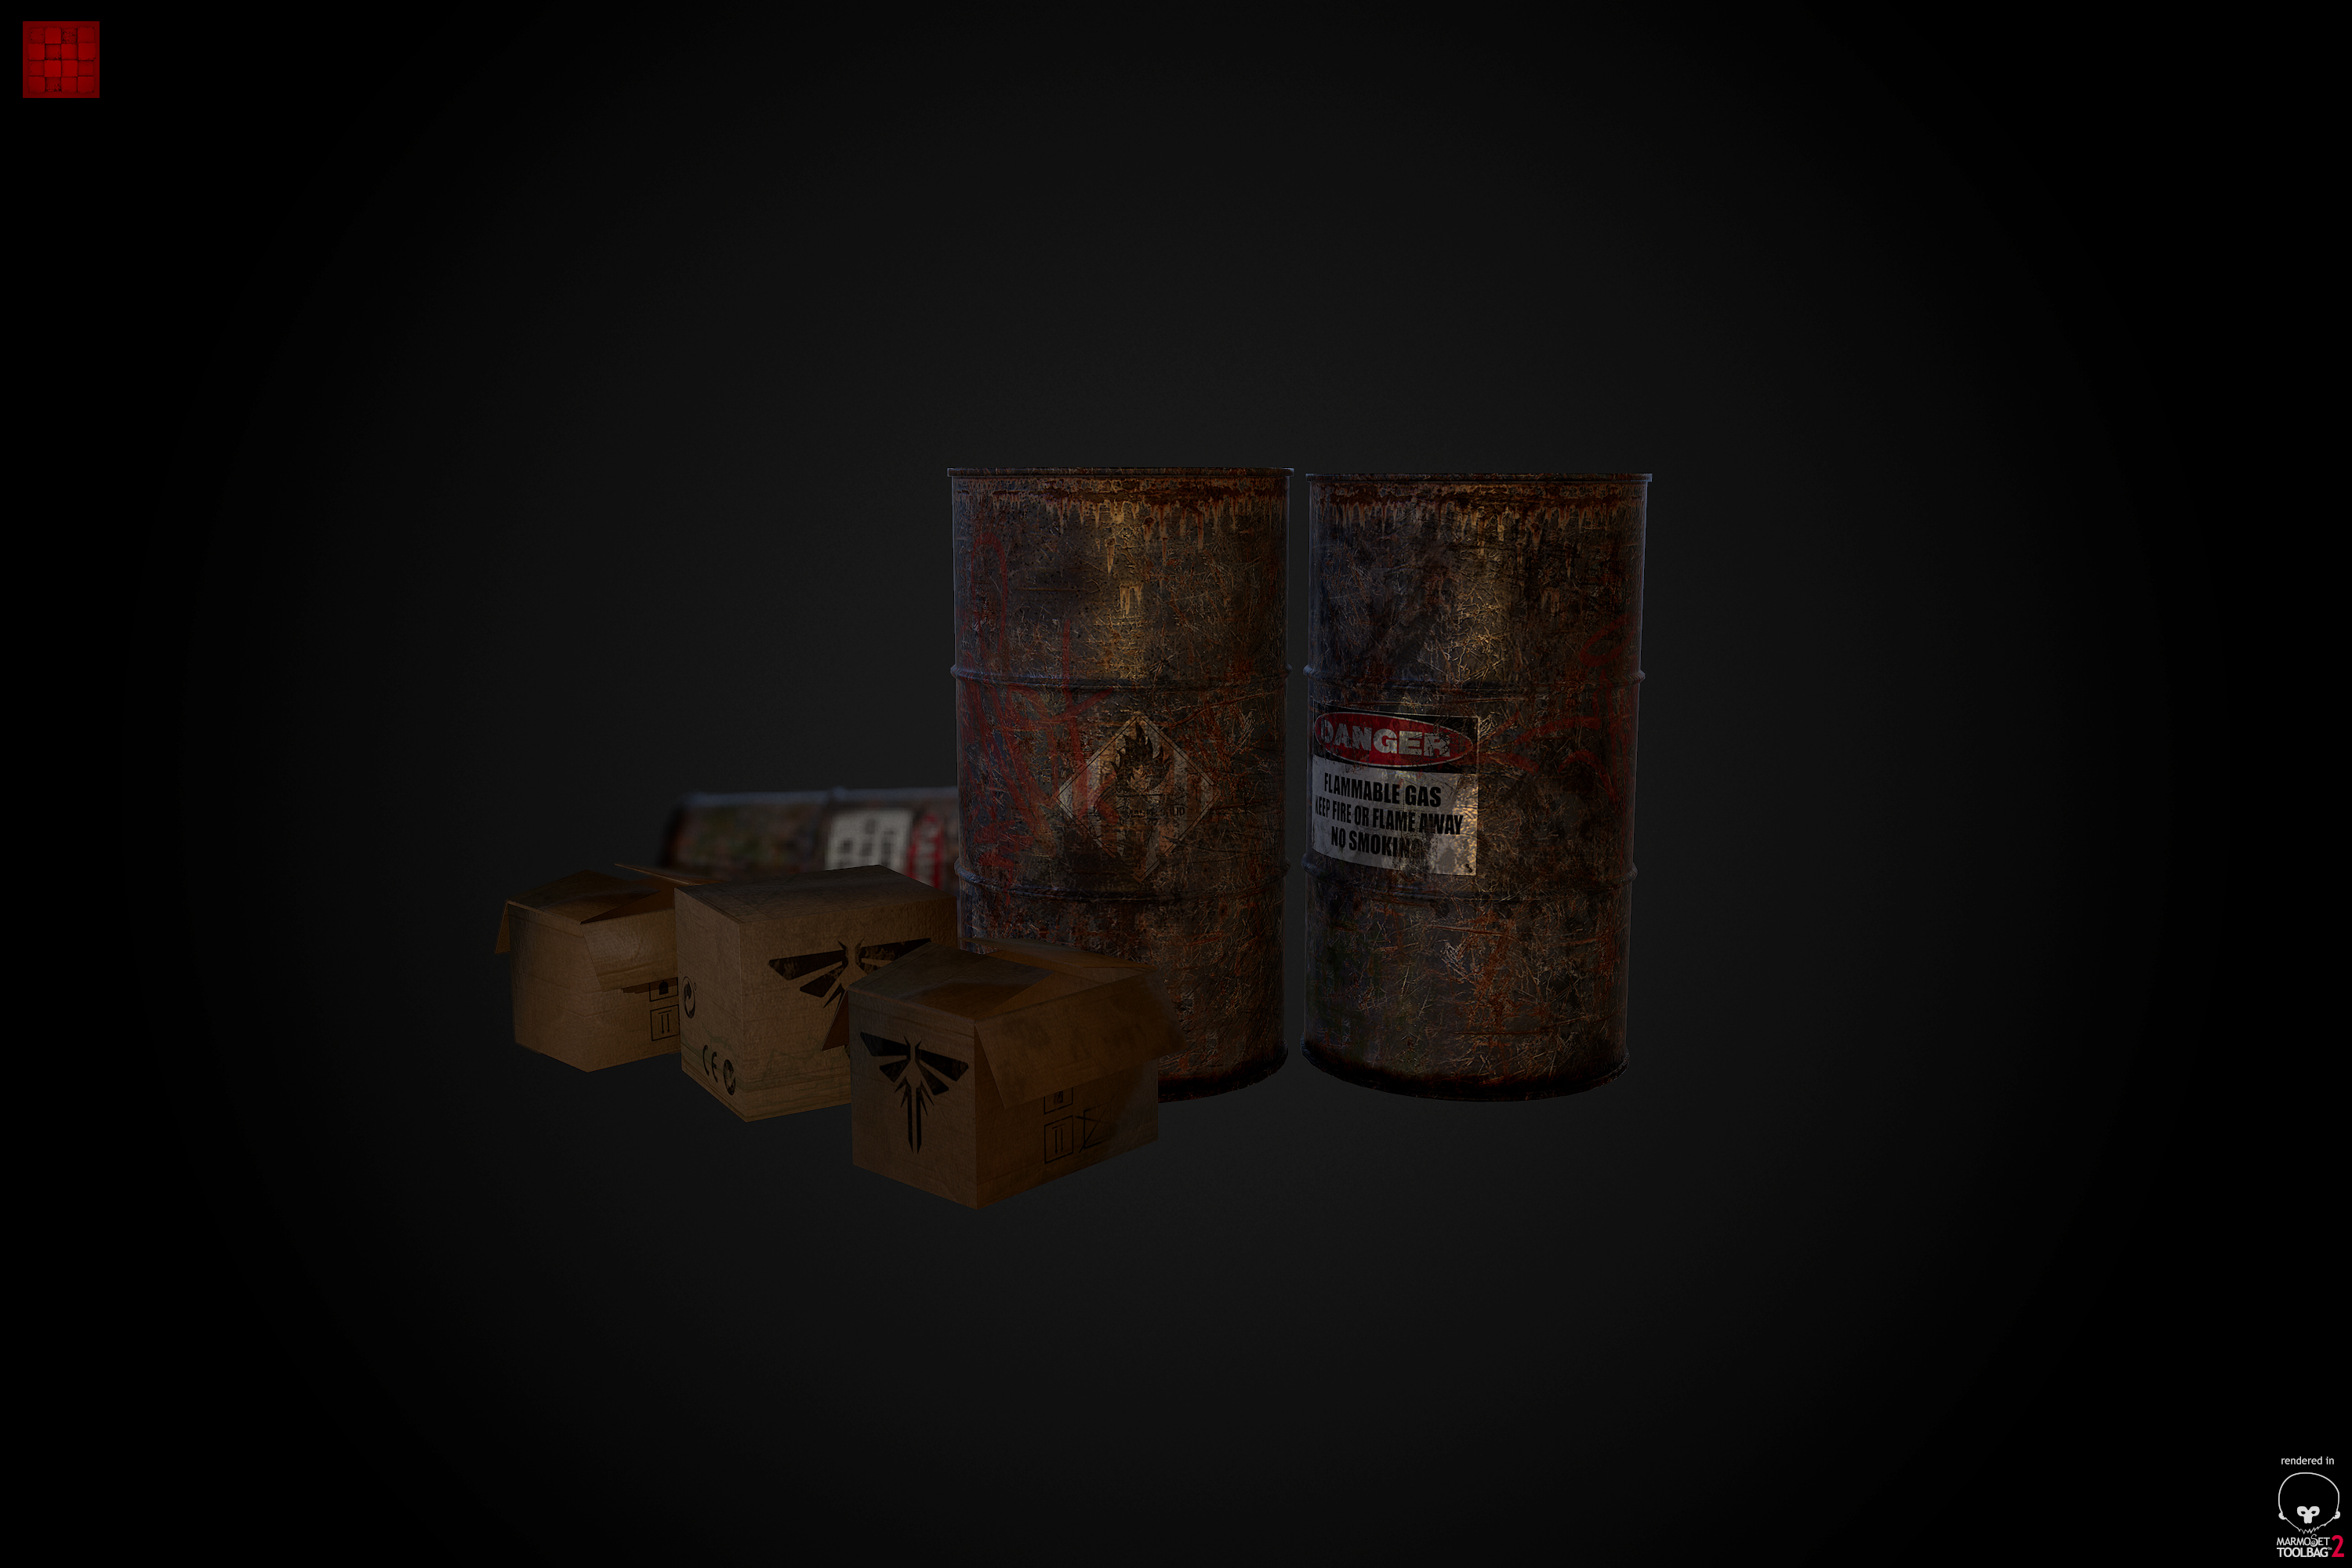 barrels_and_boxes.jpg